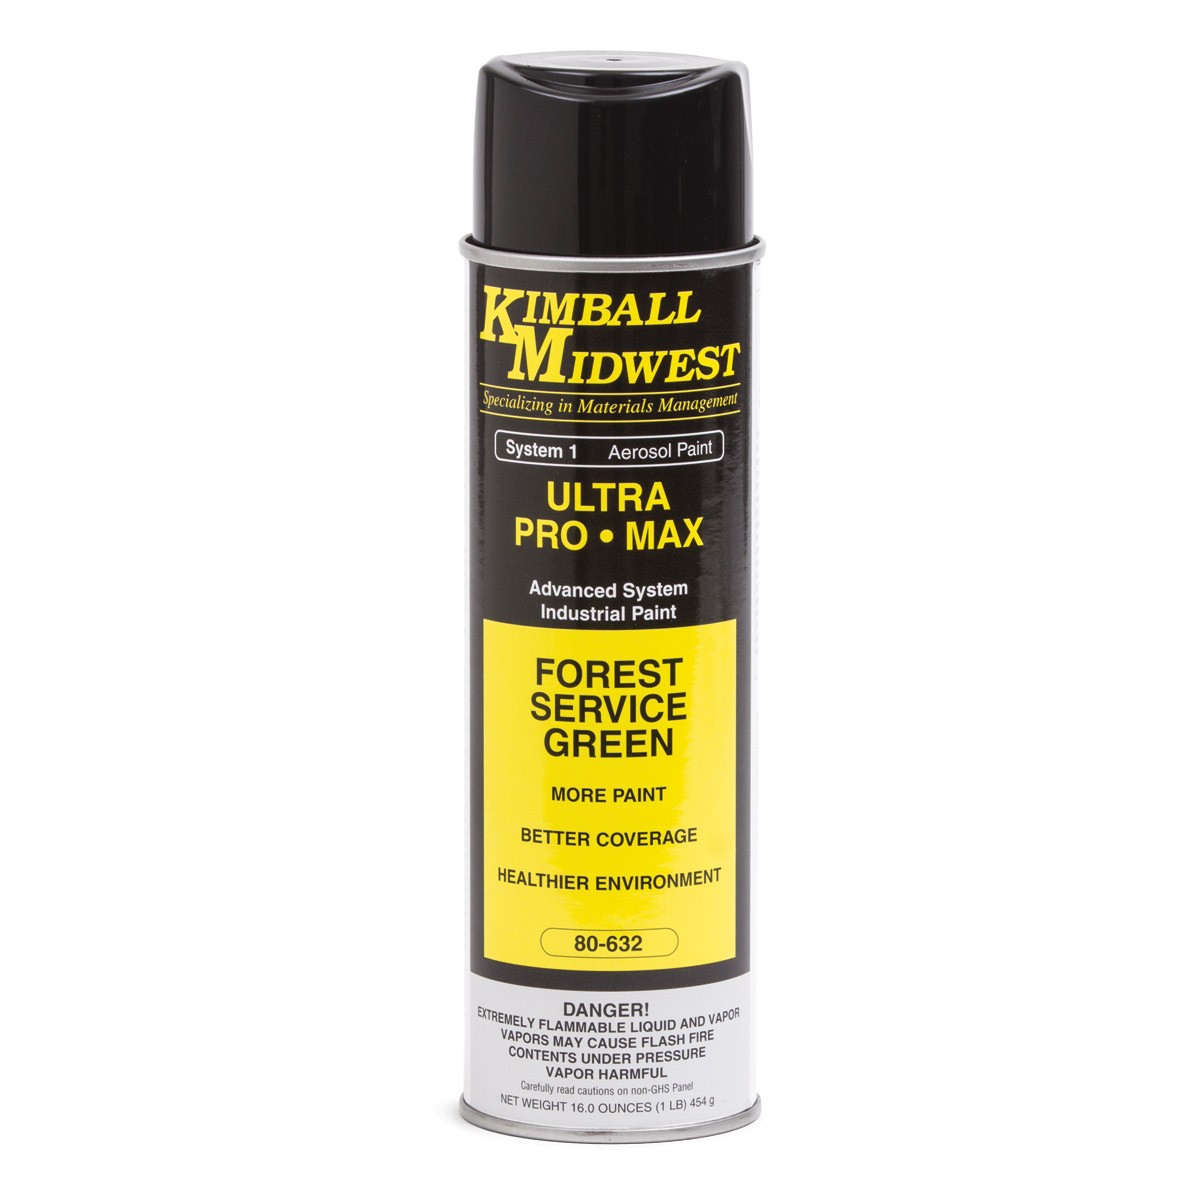 Forest Service Green Ultra Pro Max Paint